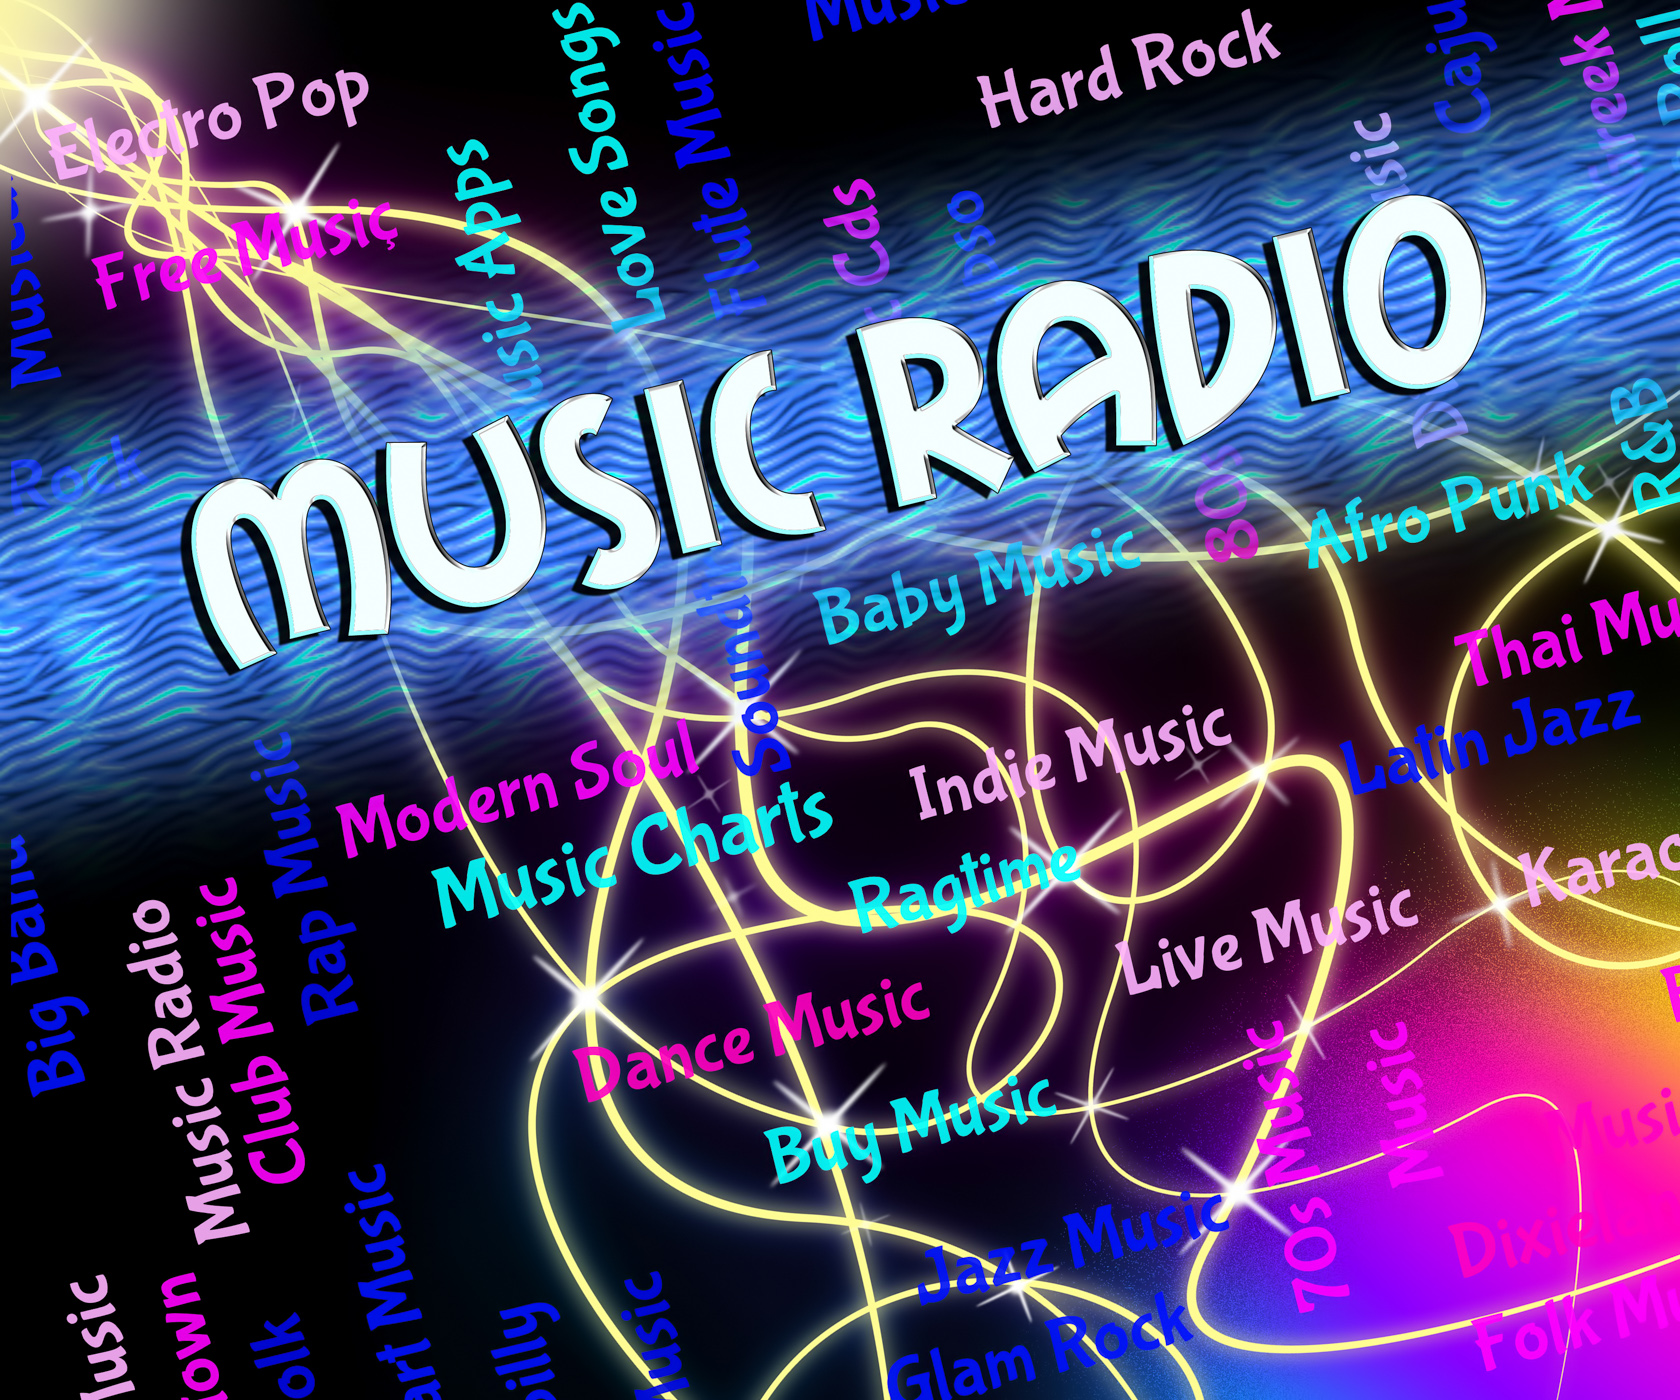 Music radio shows sound track and audio photo